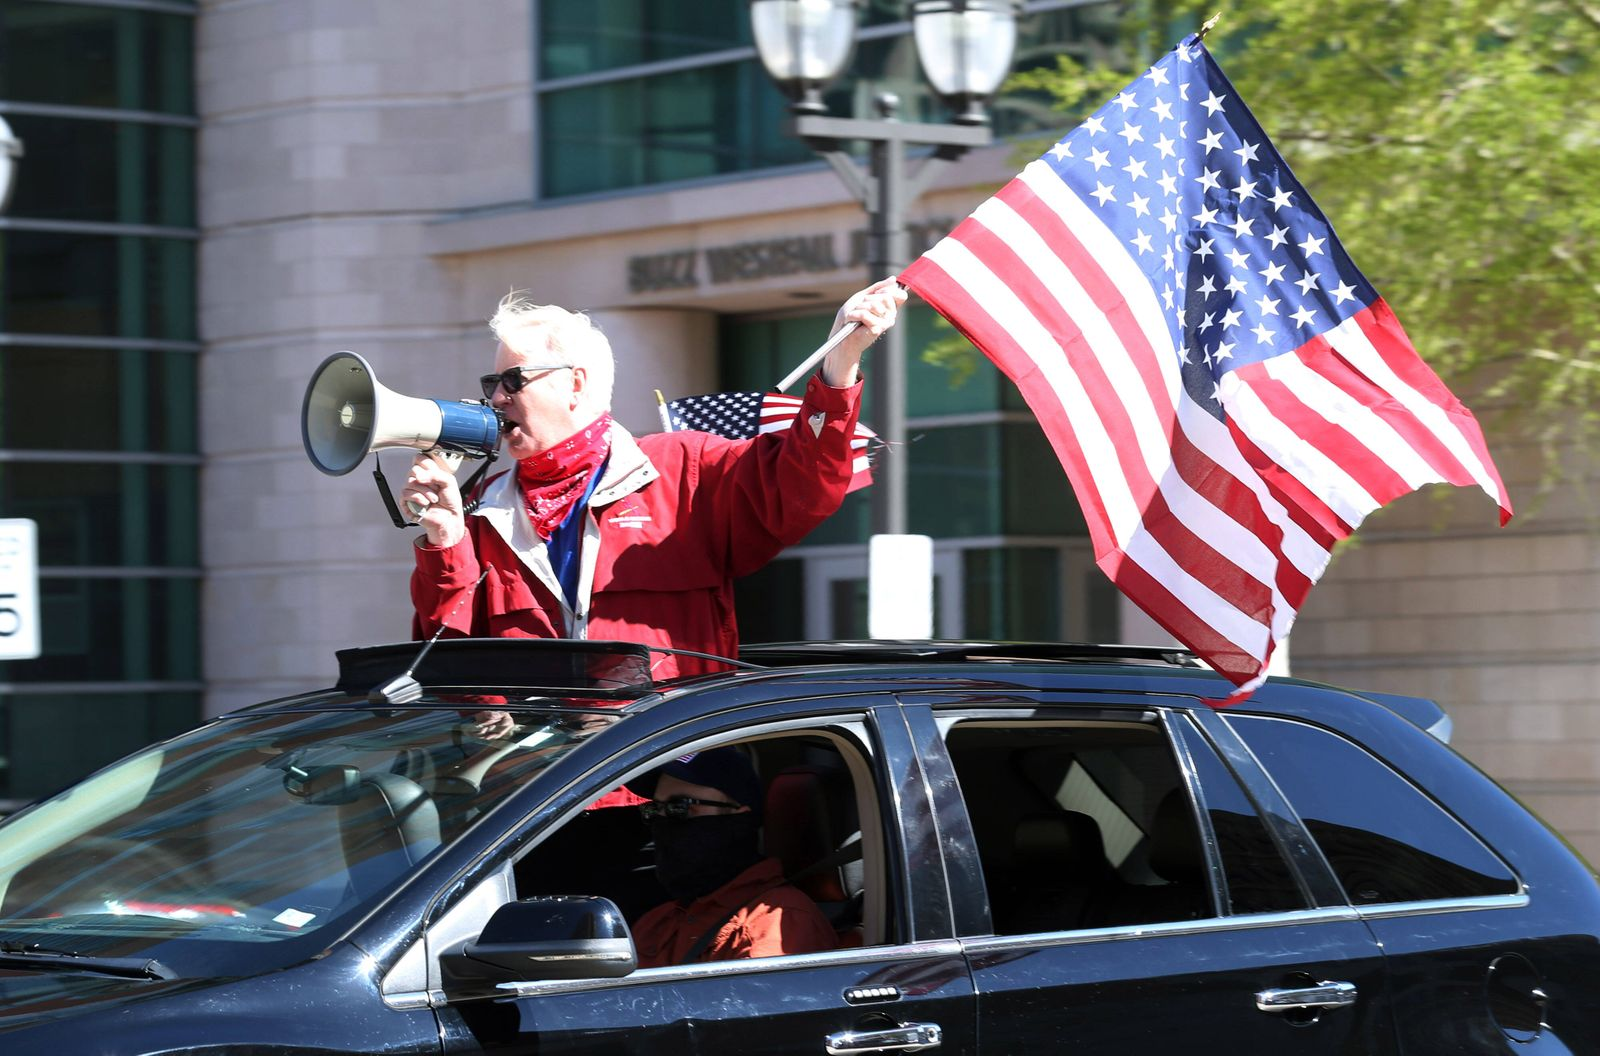 People wave American flags as they sound their horns, driving by the St. Louis County Government Center, during a drive